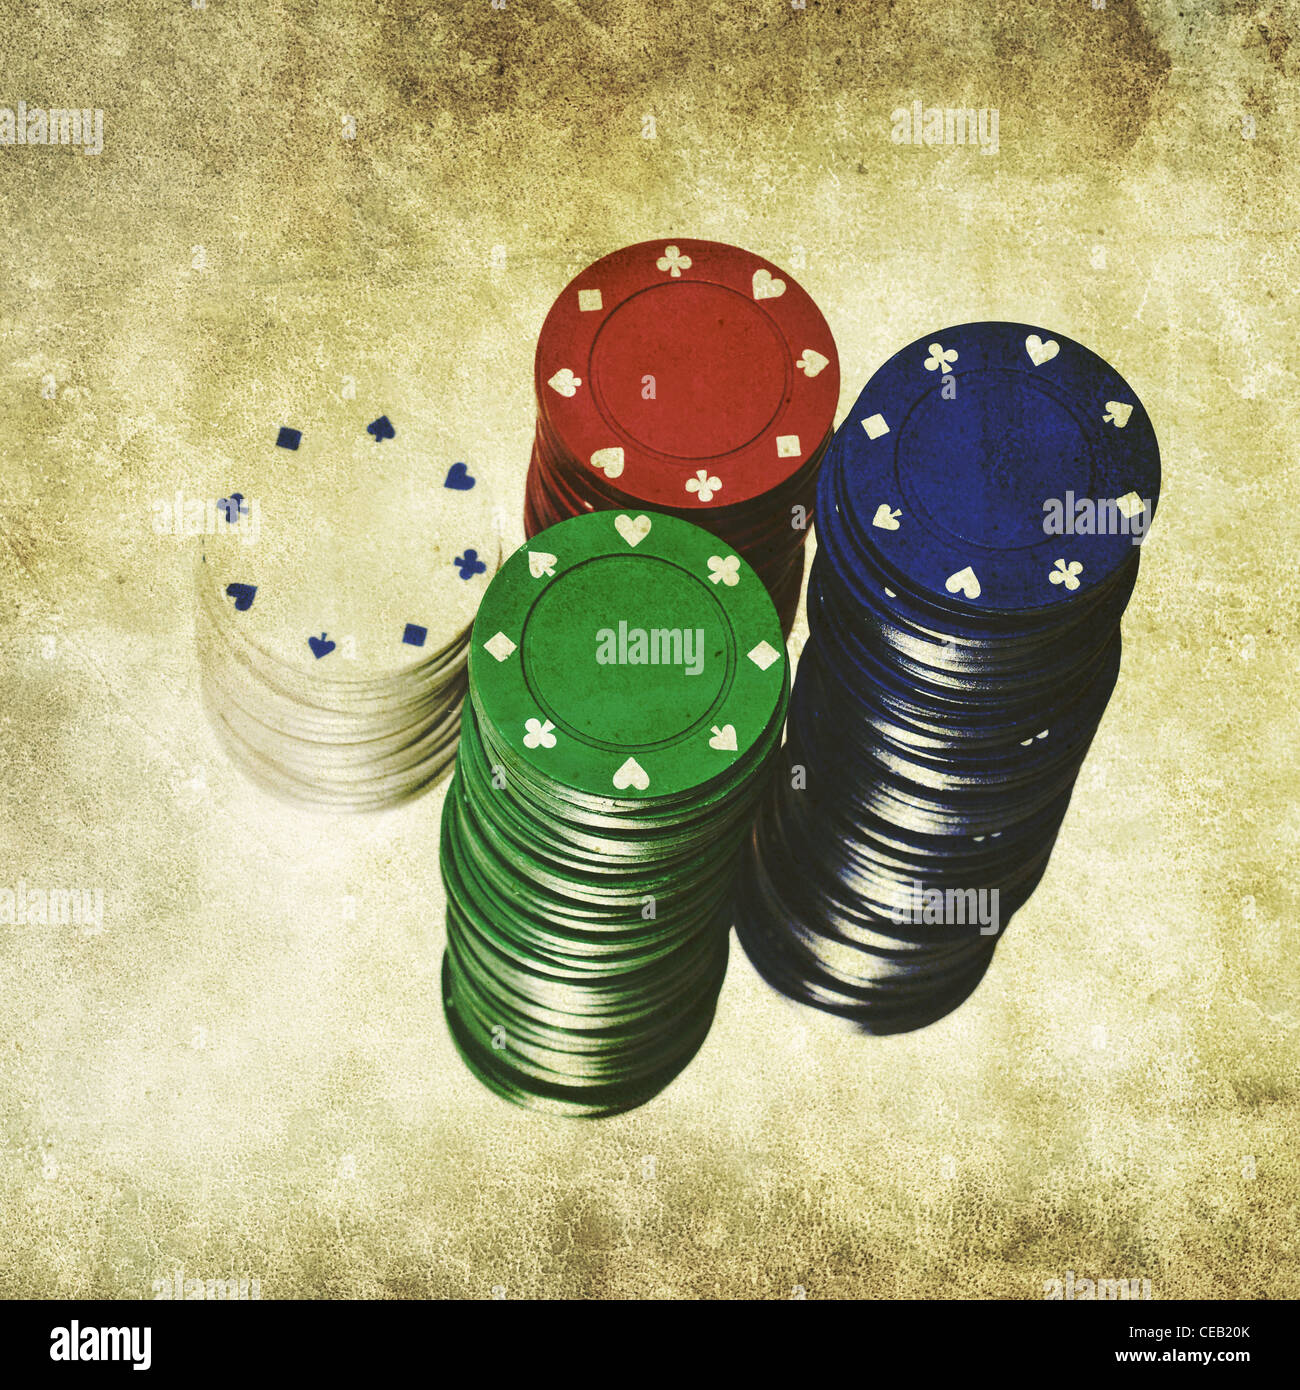 casino chips - Stock Image